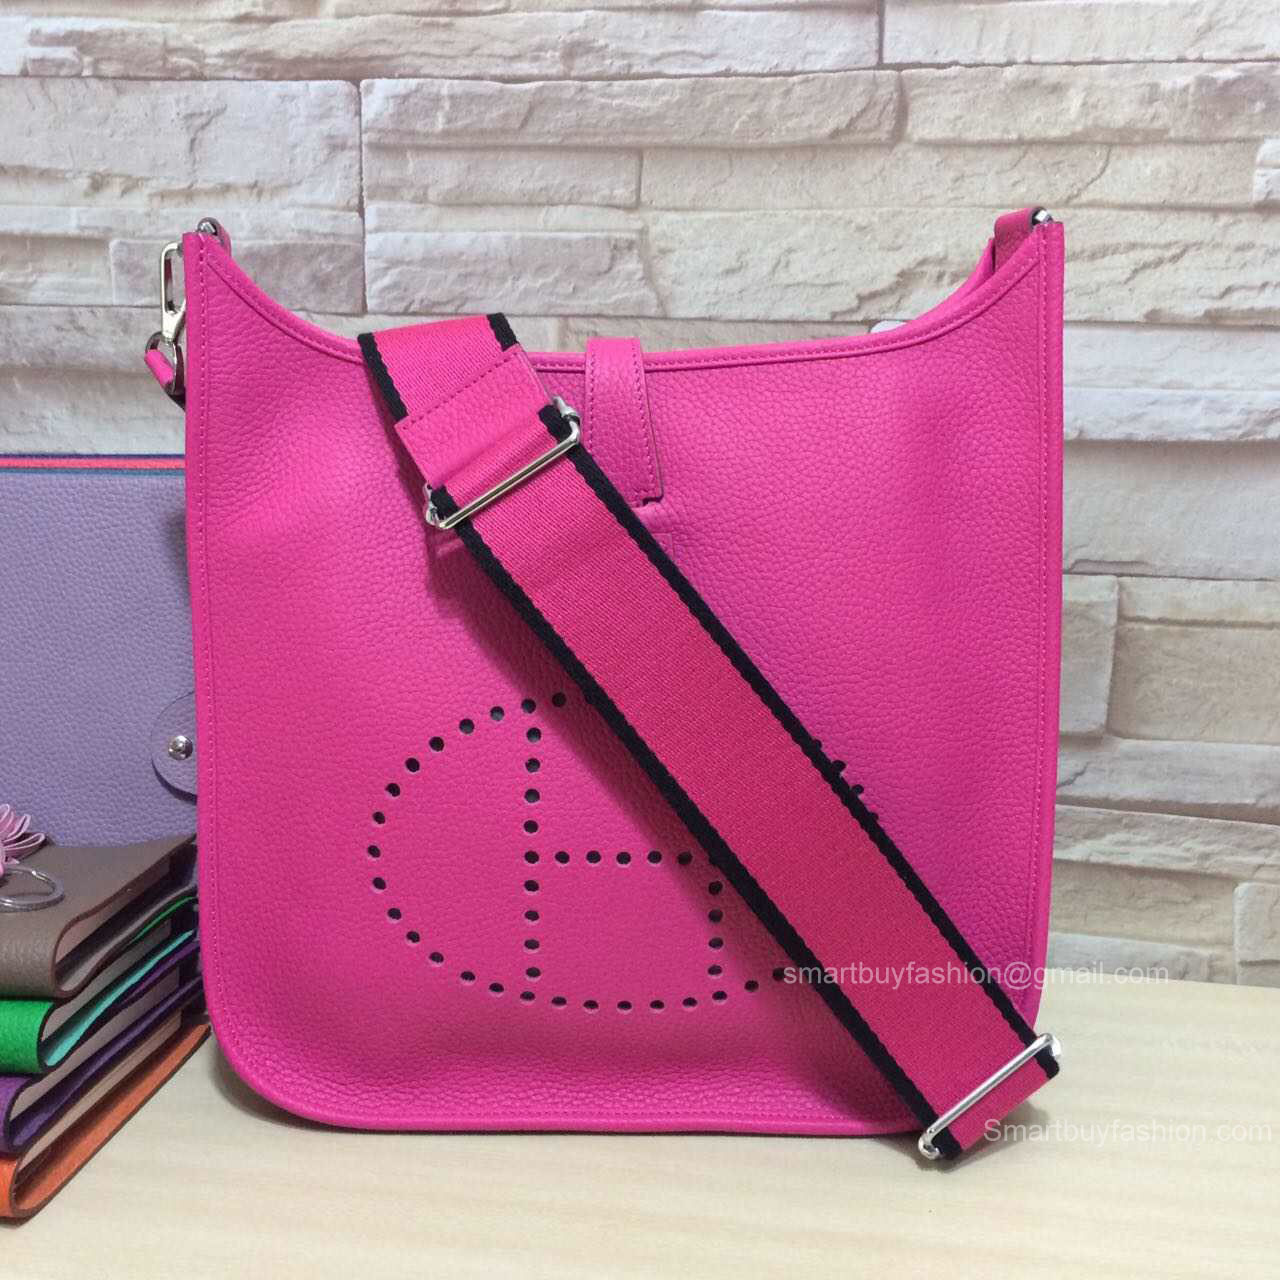 Hermes Evelyne III Bag PM in Hot Pink Togo Leather